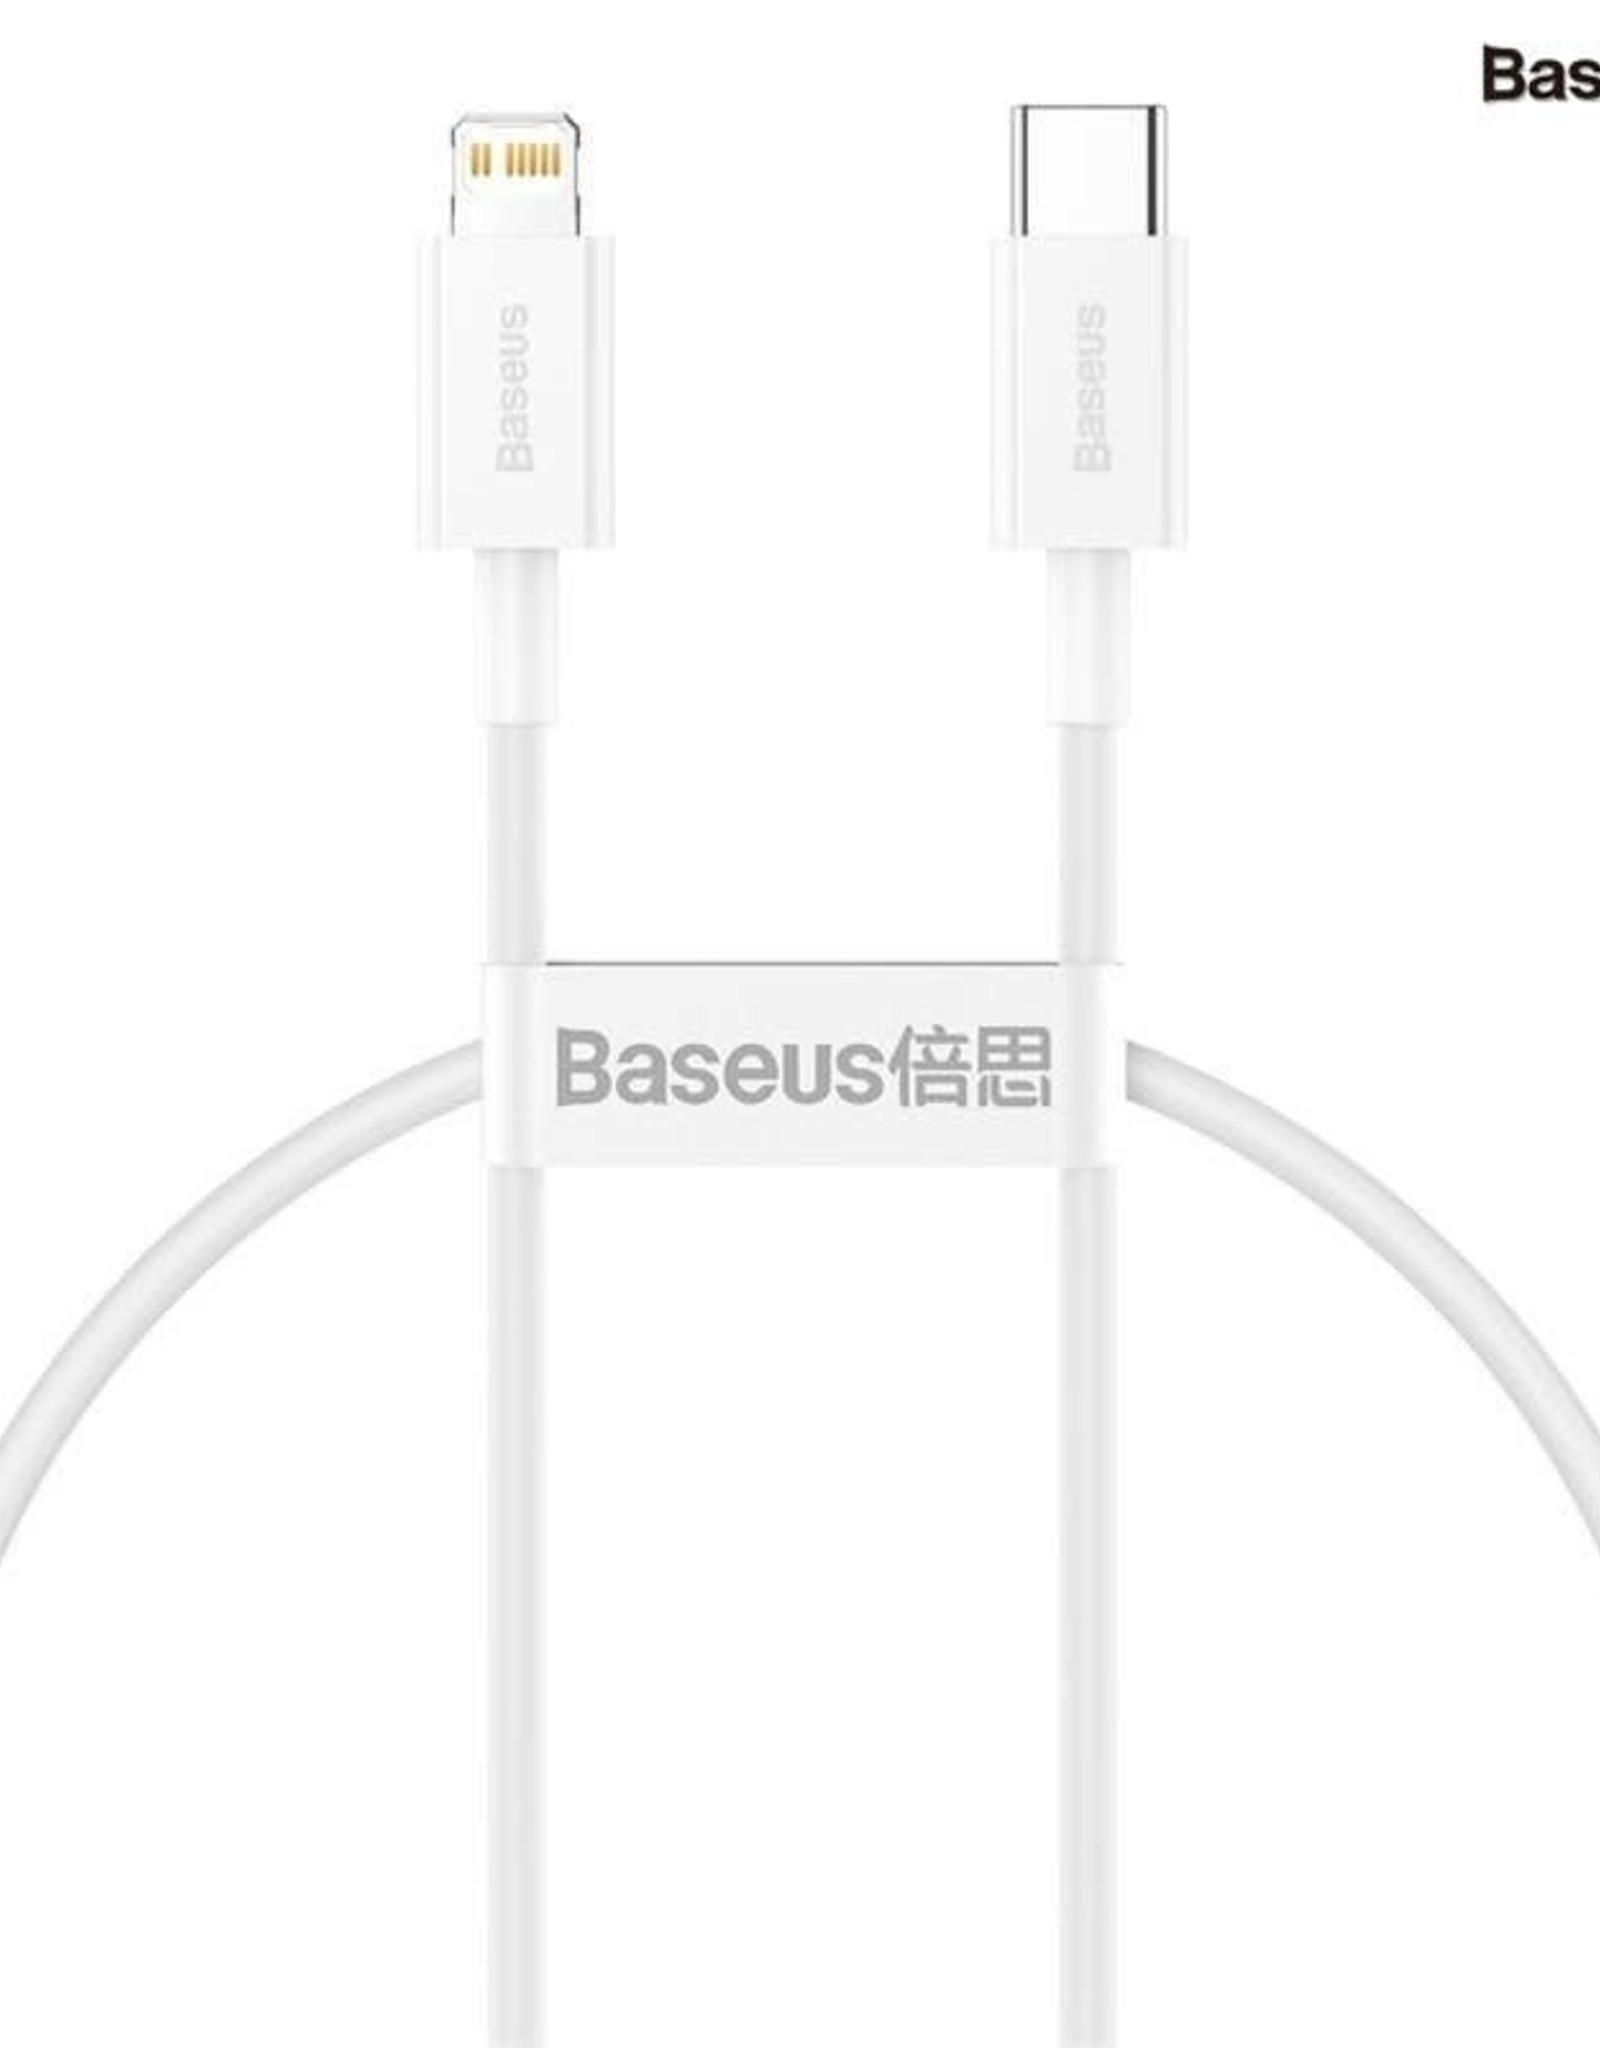 Baseus Baseus Superior Series Fast Charging Data Cable Type-C to iP PD 20W